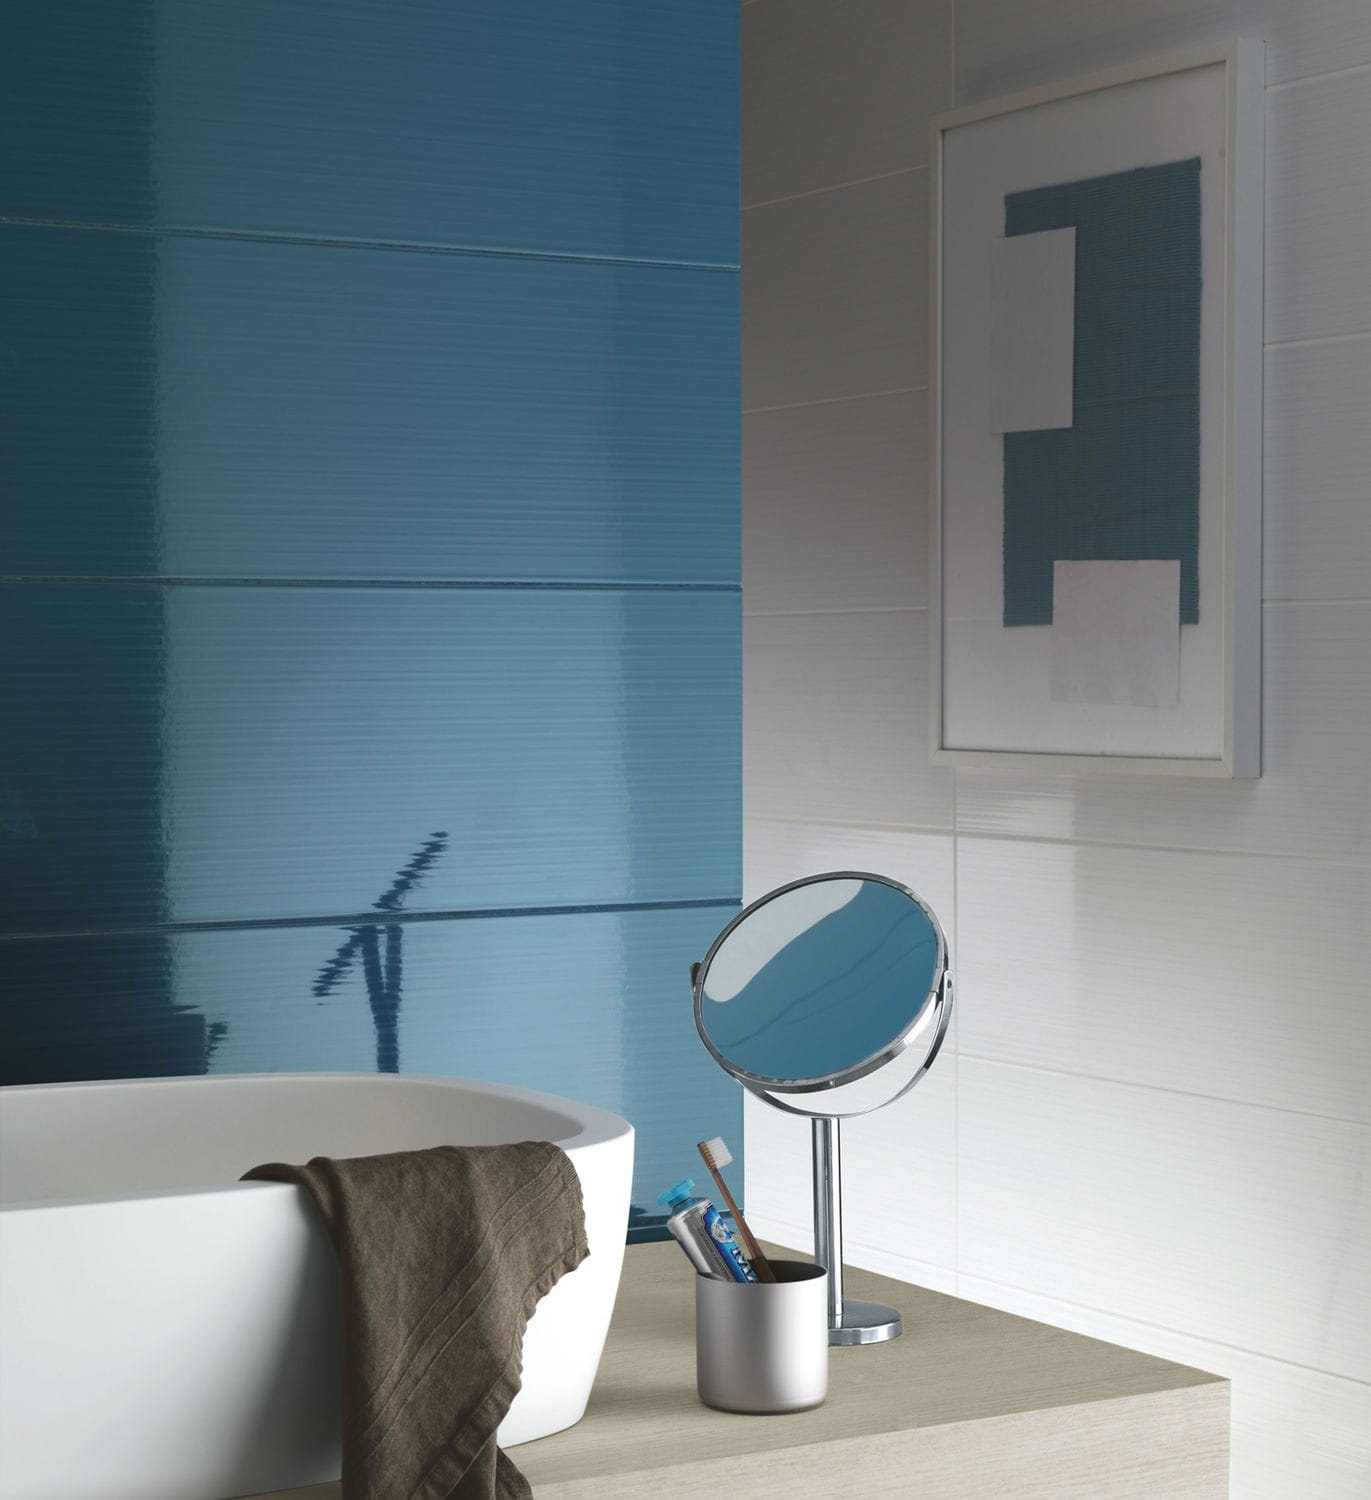 Bathroom tile / wall / ceramic / high-gloss - SMART - Ragno - Videos